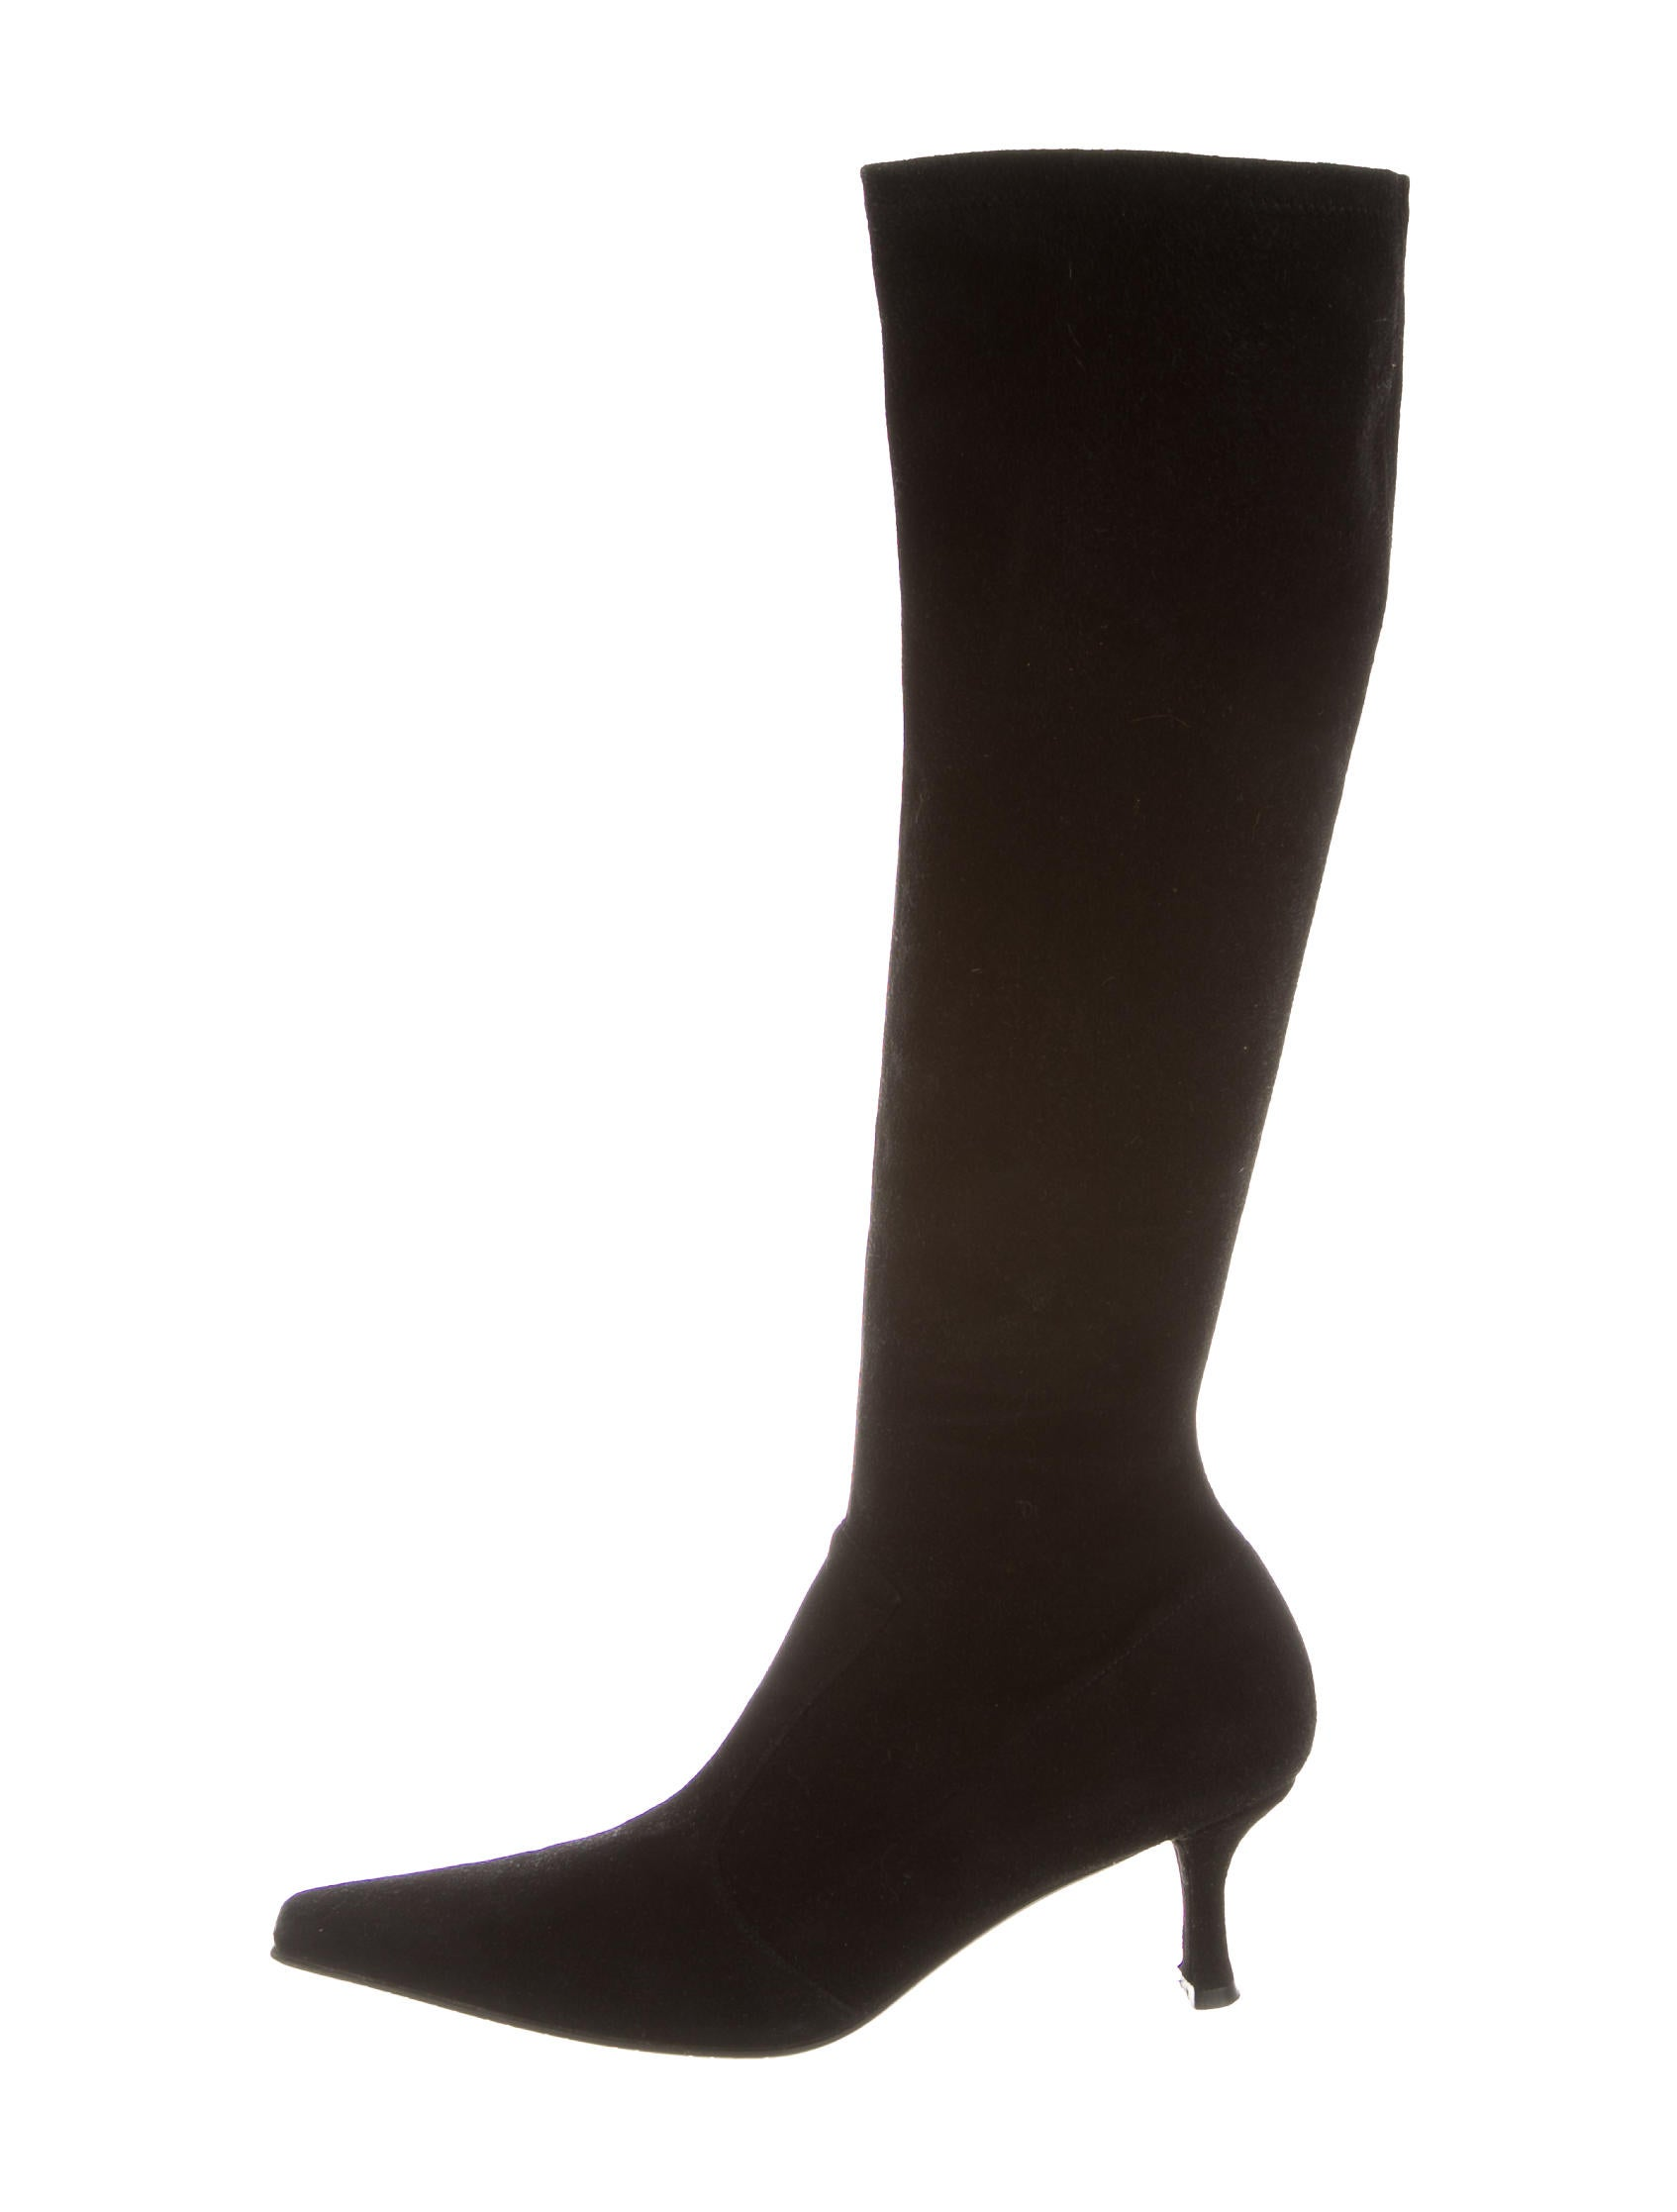 stuart weitzman suede knee high boots shoes wsu23704